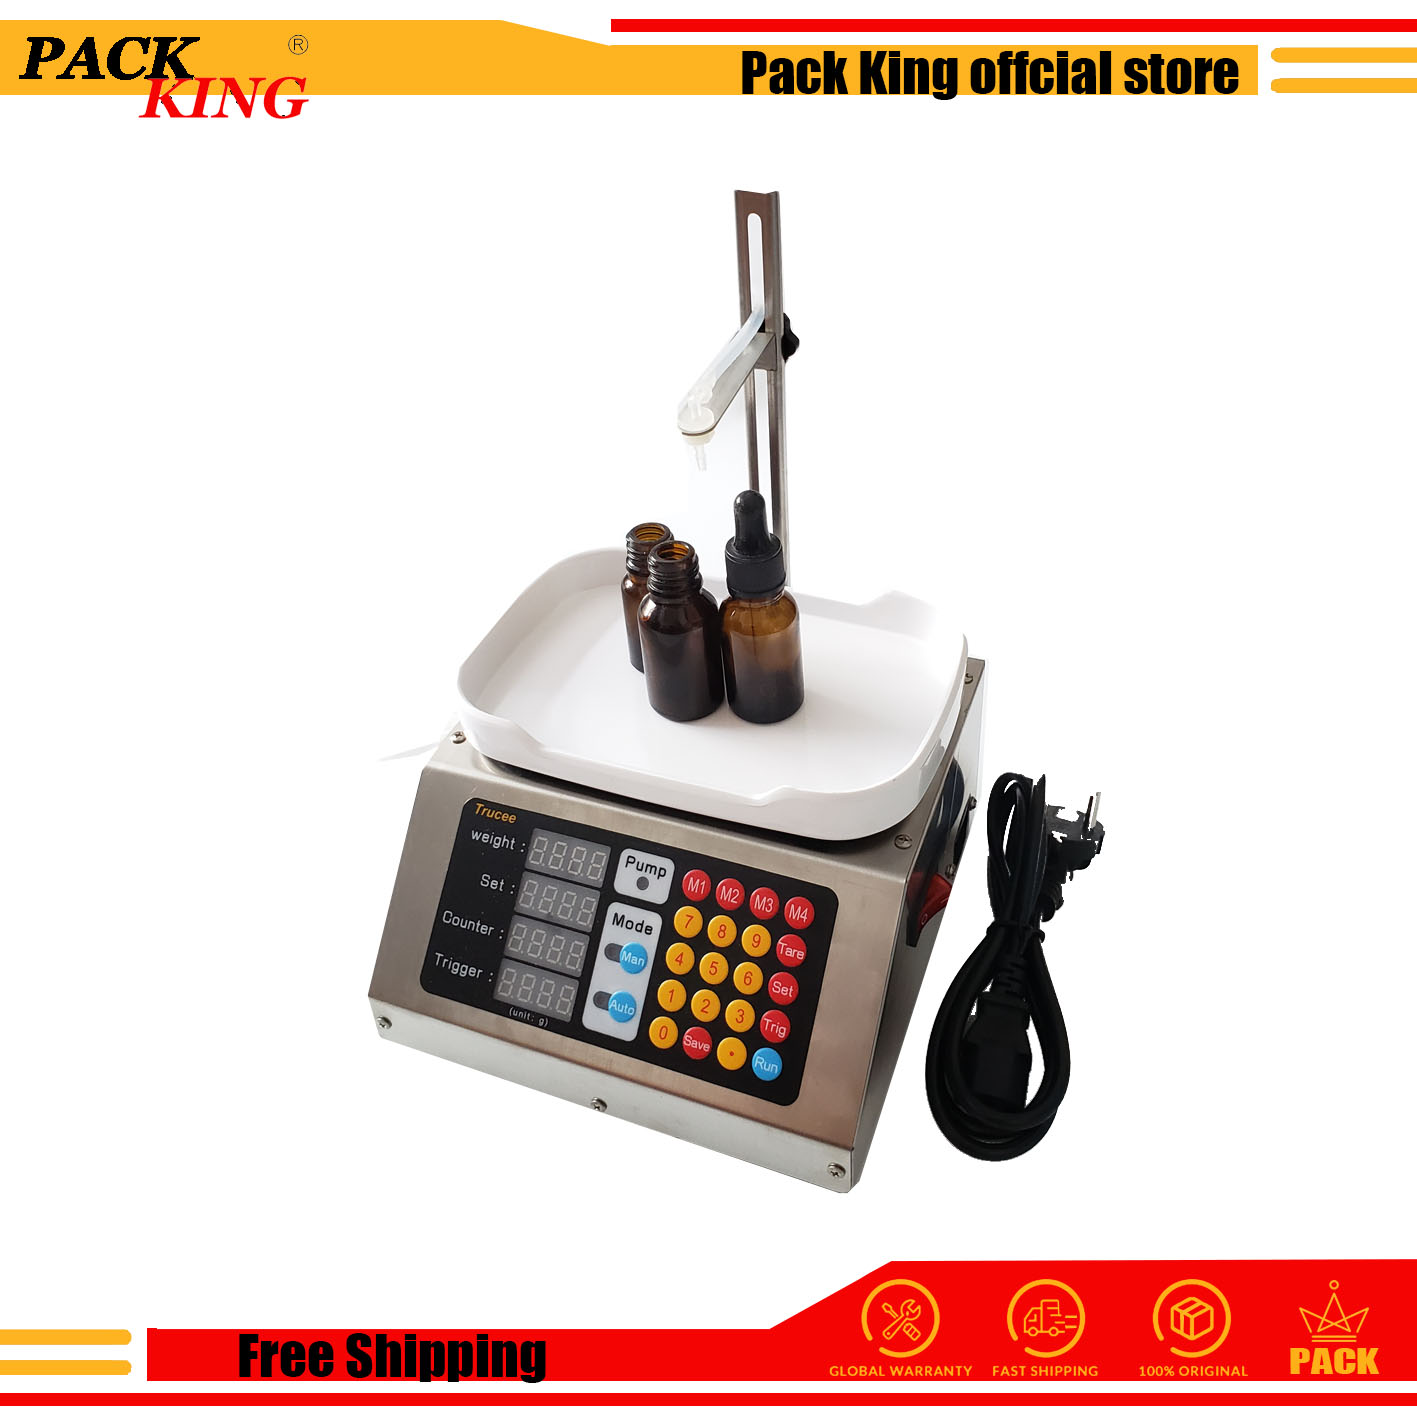 Weighing Peristaltic Pump Filling Machine Electronic Scale Liquid Filler 110v-220v Electric Cigarette Vape 0-50ml Free Shipping